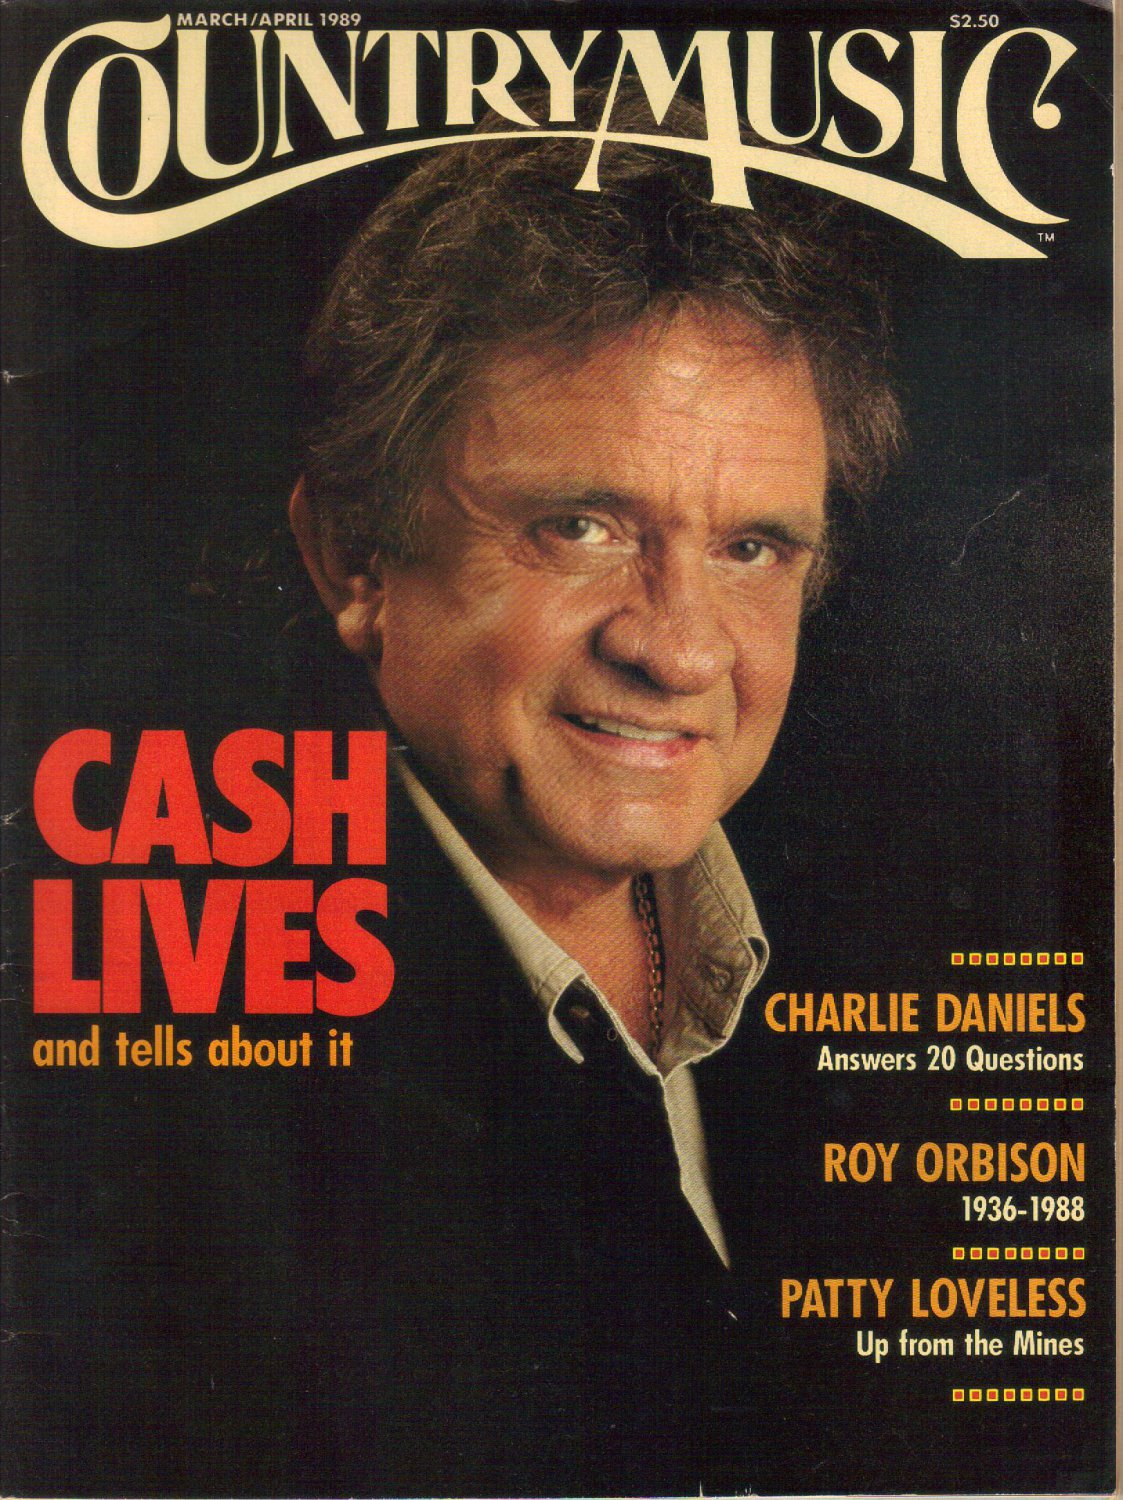 COUNTRY MUSIC March April 1989 No 136 JOHNNY CASH Charlie Daniels Roy Orbison Patty Loveless